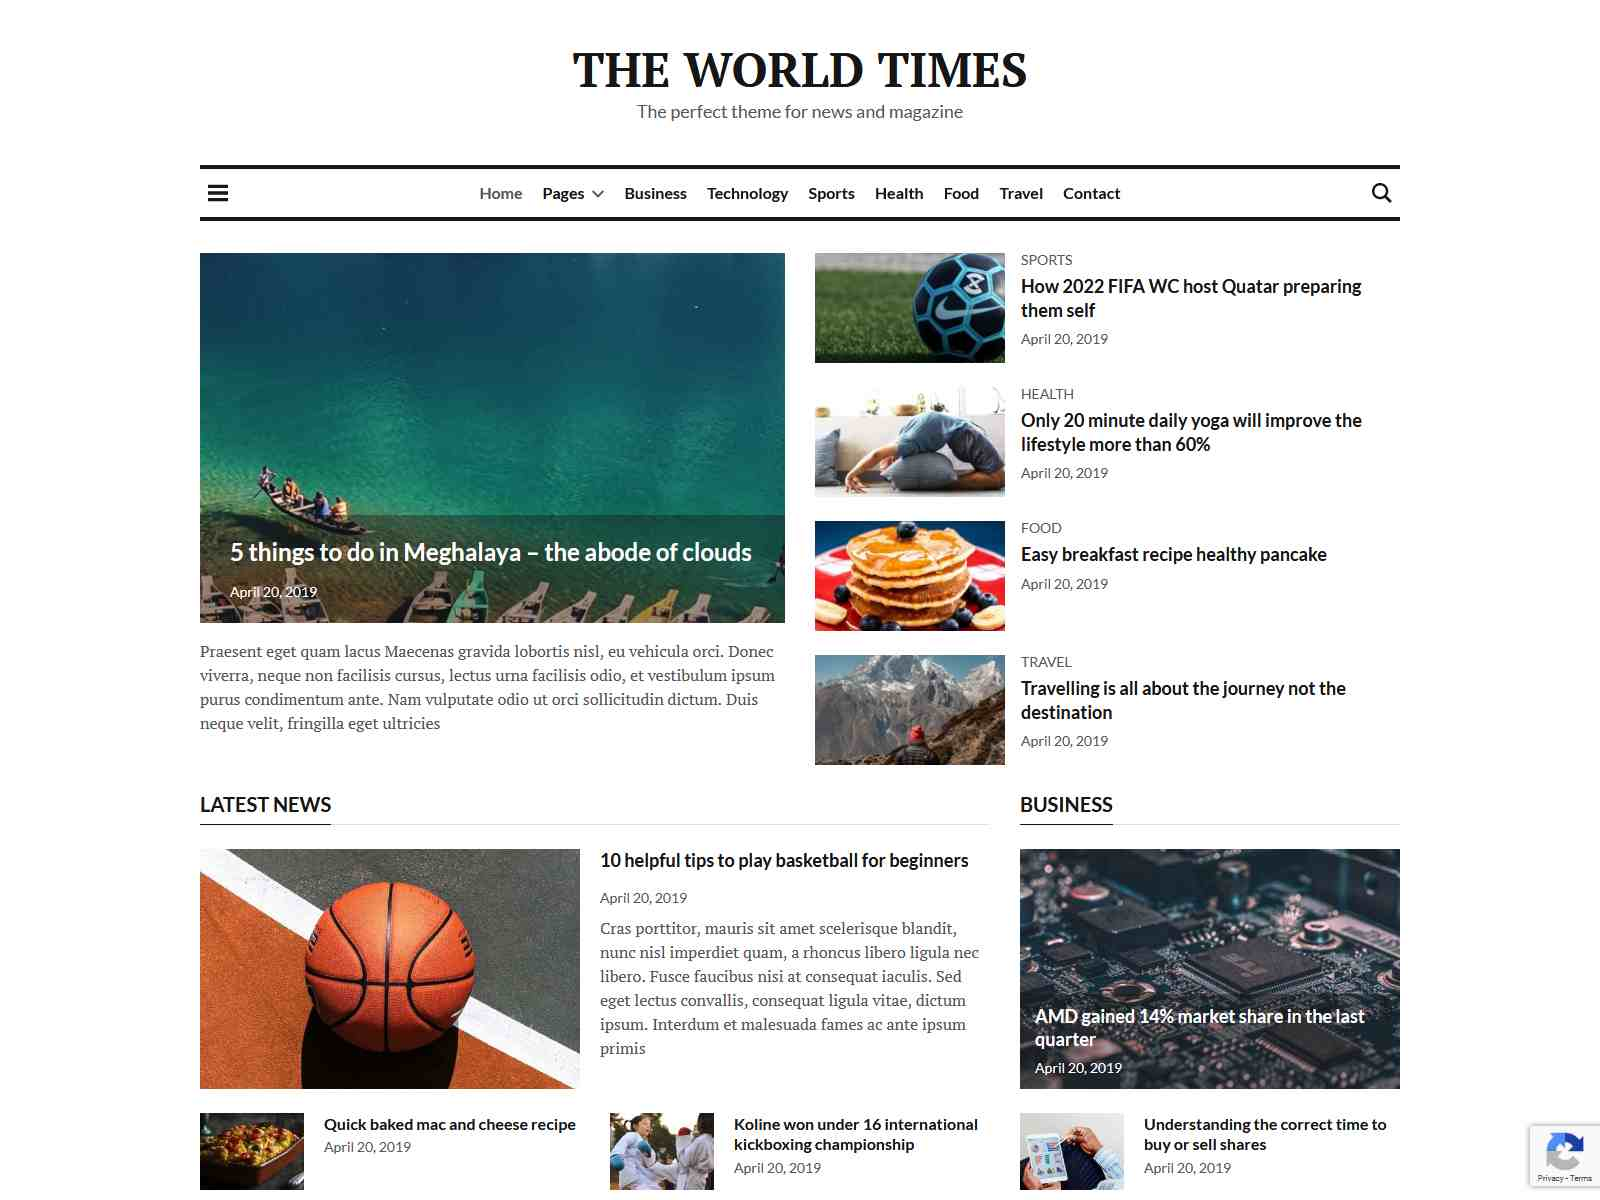 World Times - Newspaper & Magazine Style WordPress Theme wordpress news themes